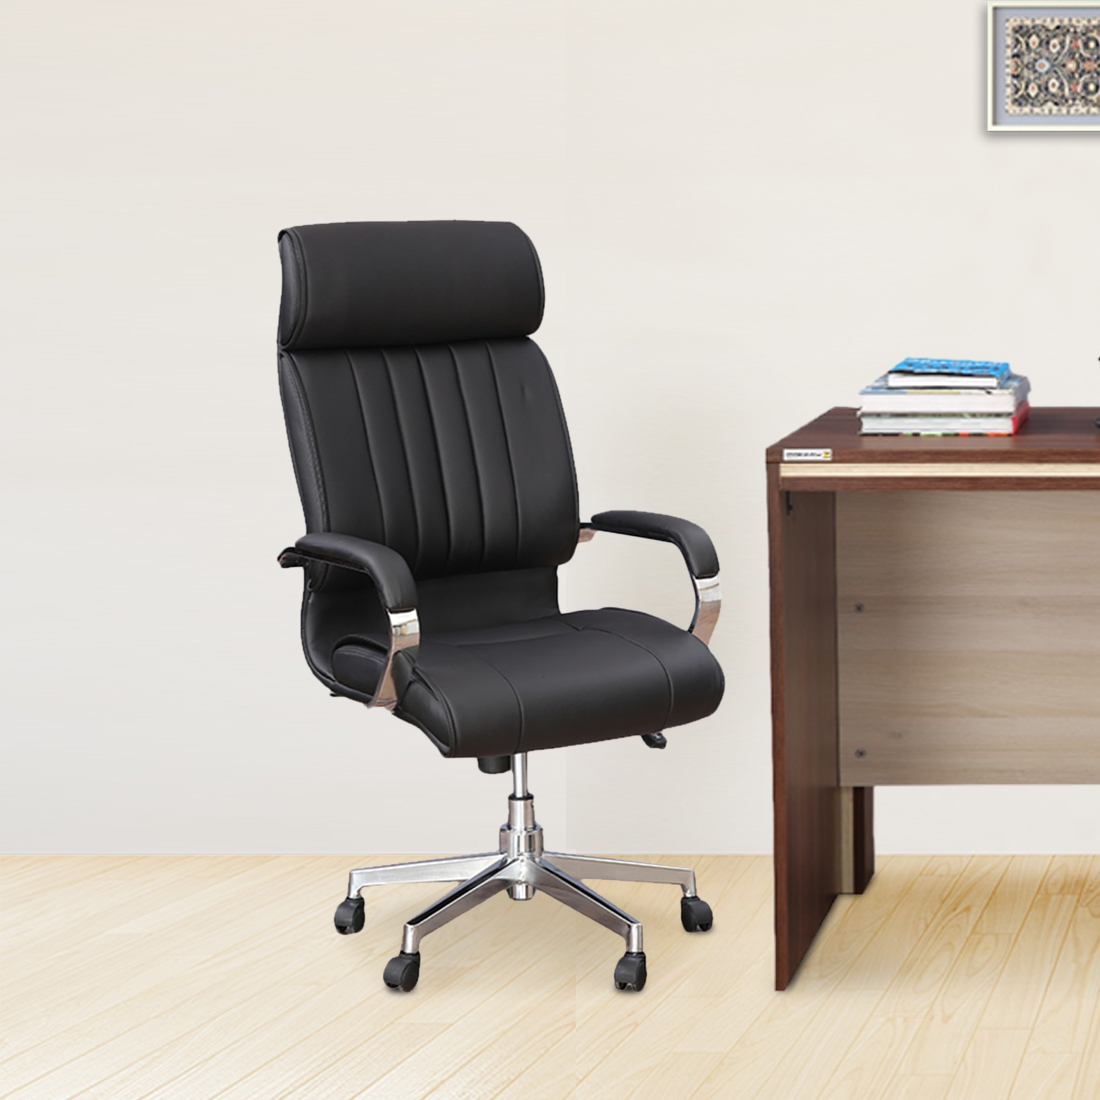 Quadra Half Leather High Back Office Chair in Black Colour by HomeTown